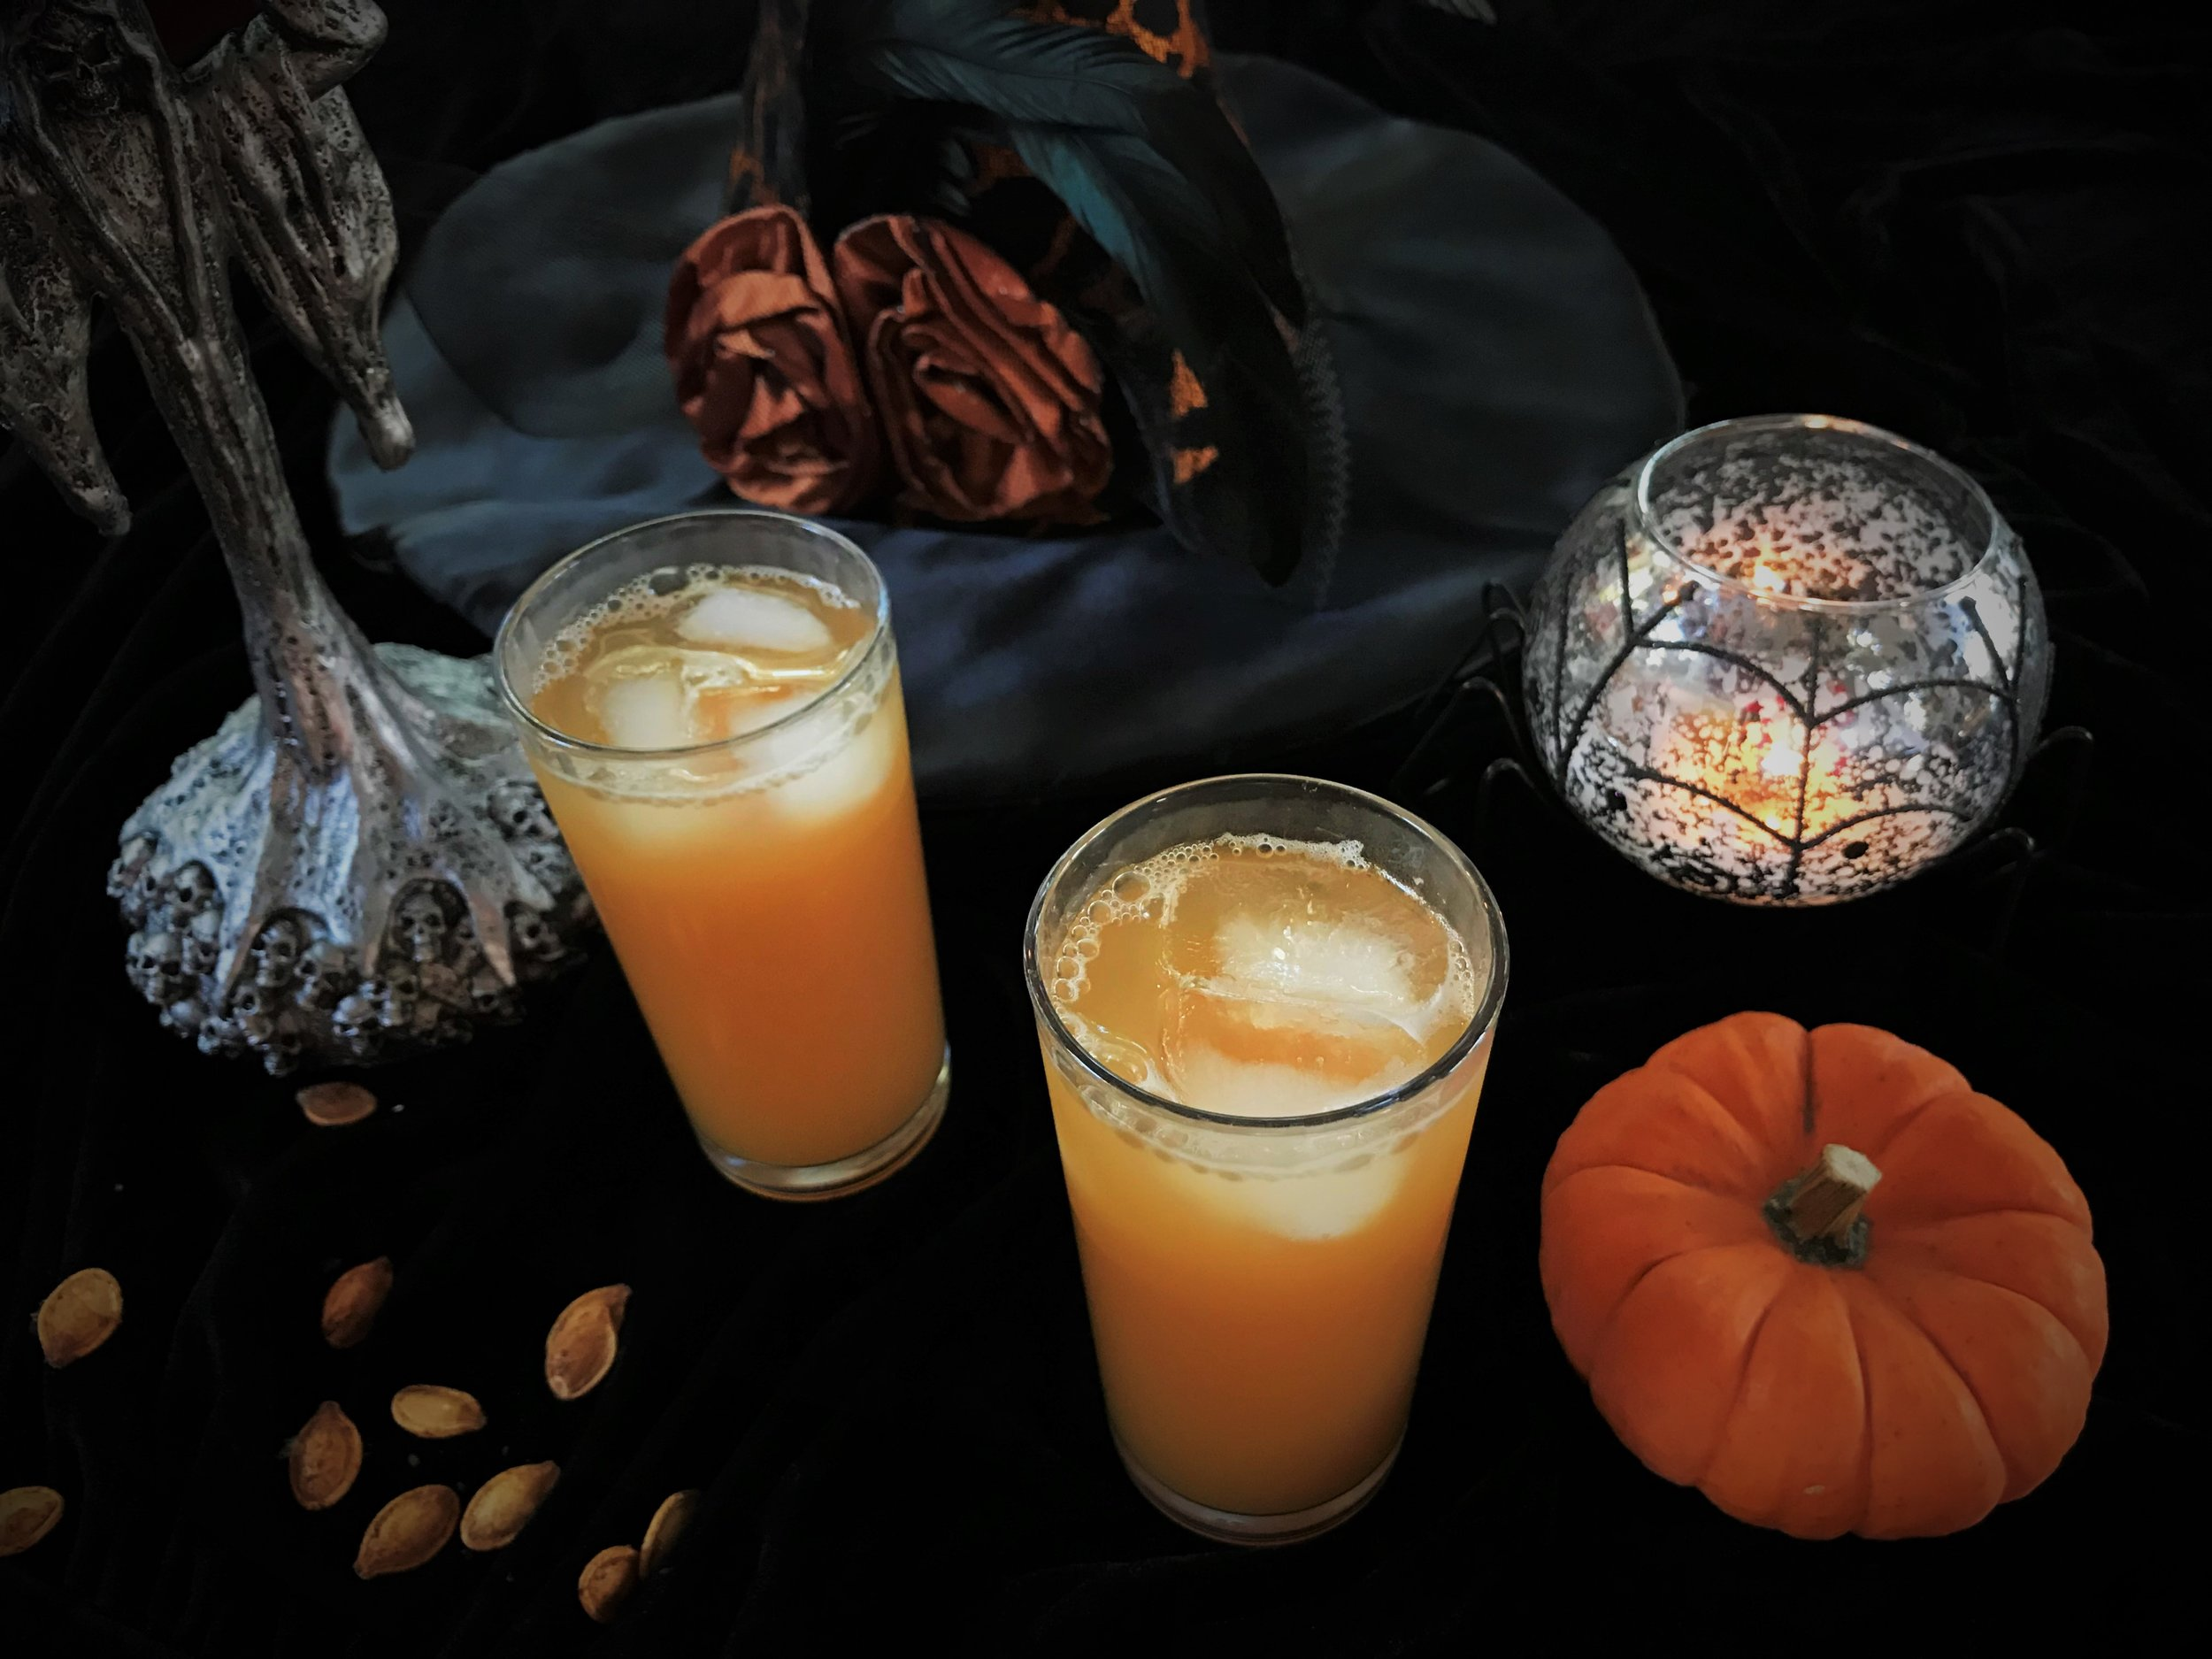 Harry Potter's Pumpkin Juice ready for action in the Adventure Kitchen.